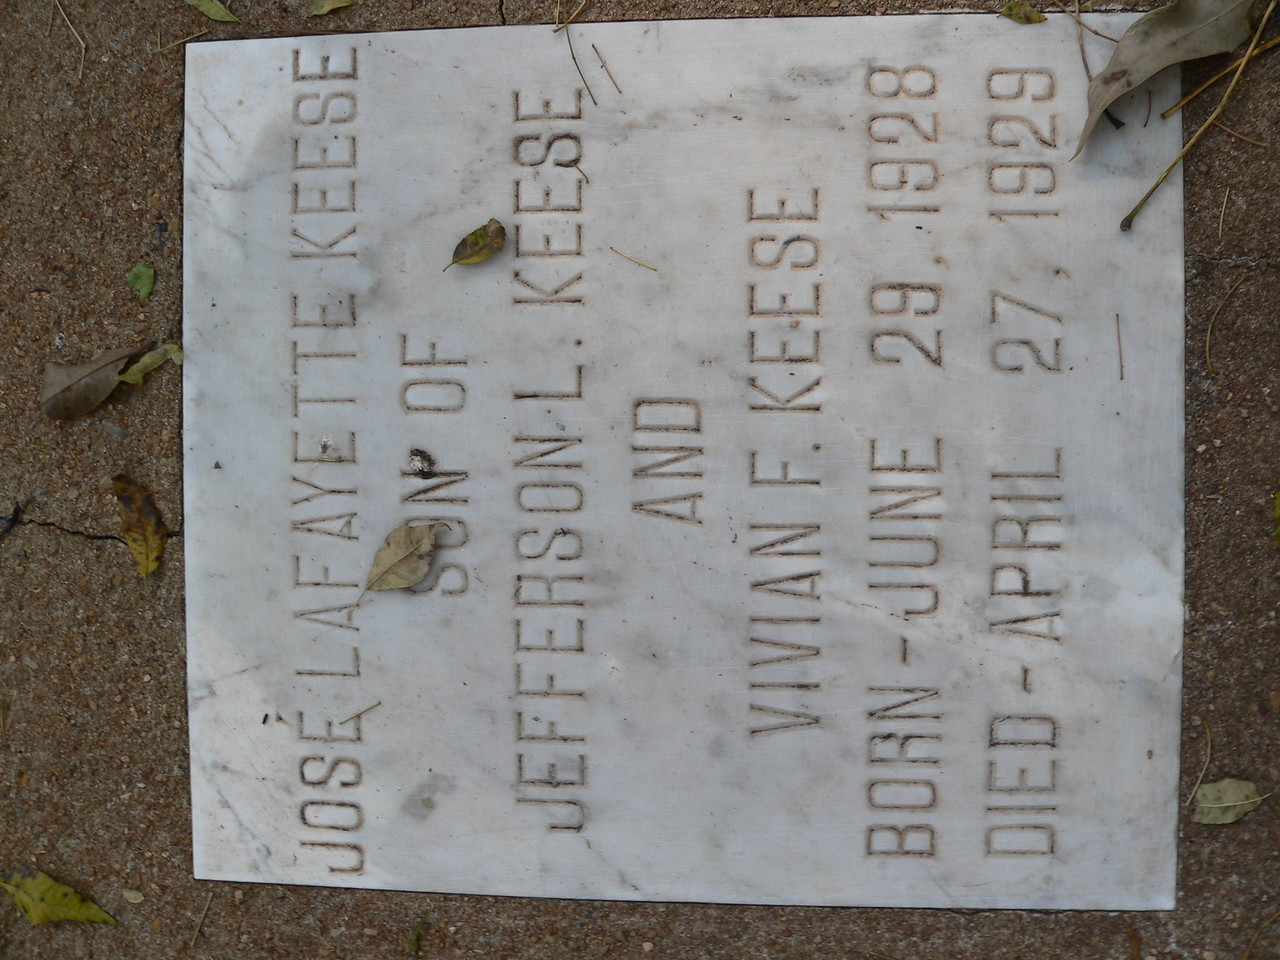 Jose Keese - who survived less than a year. June 1928 to April 1927.